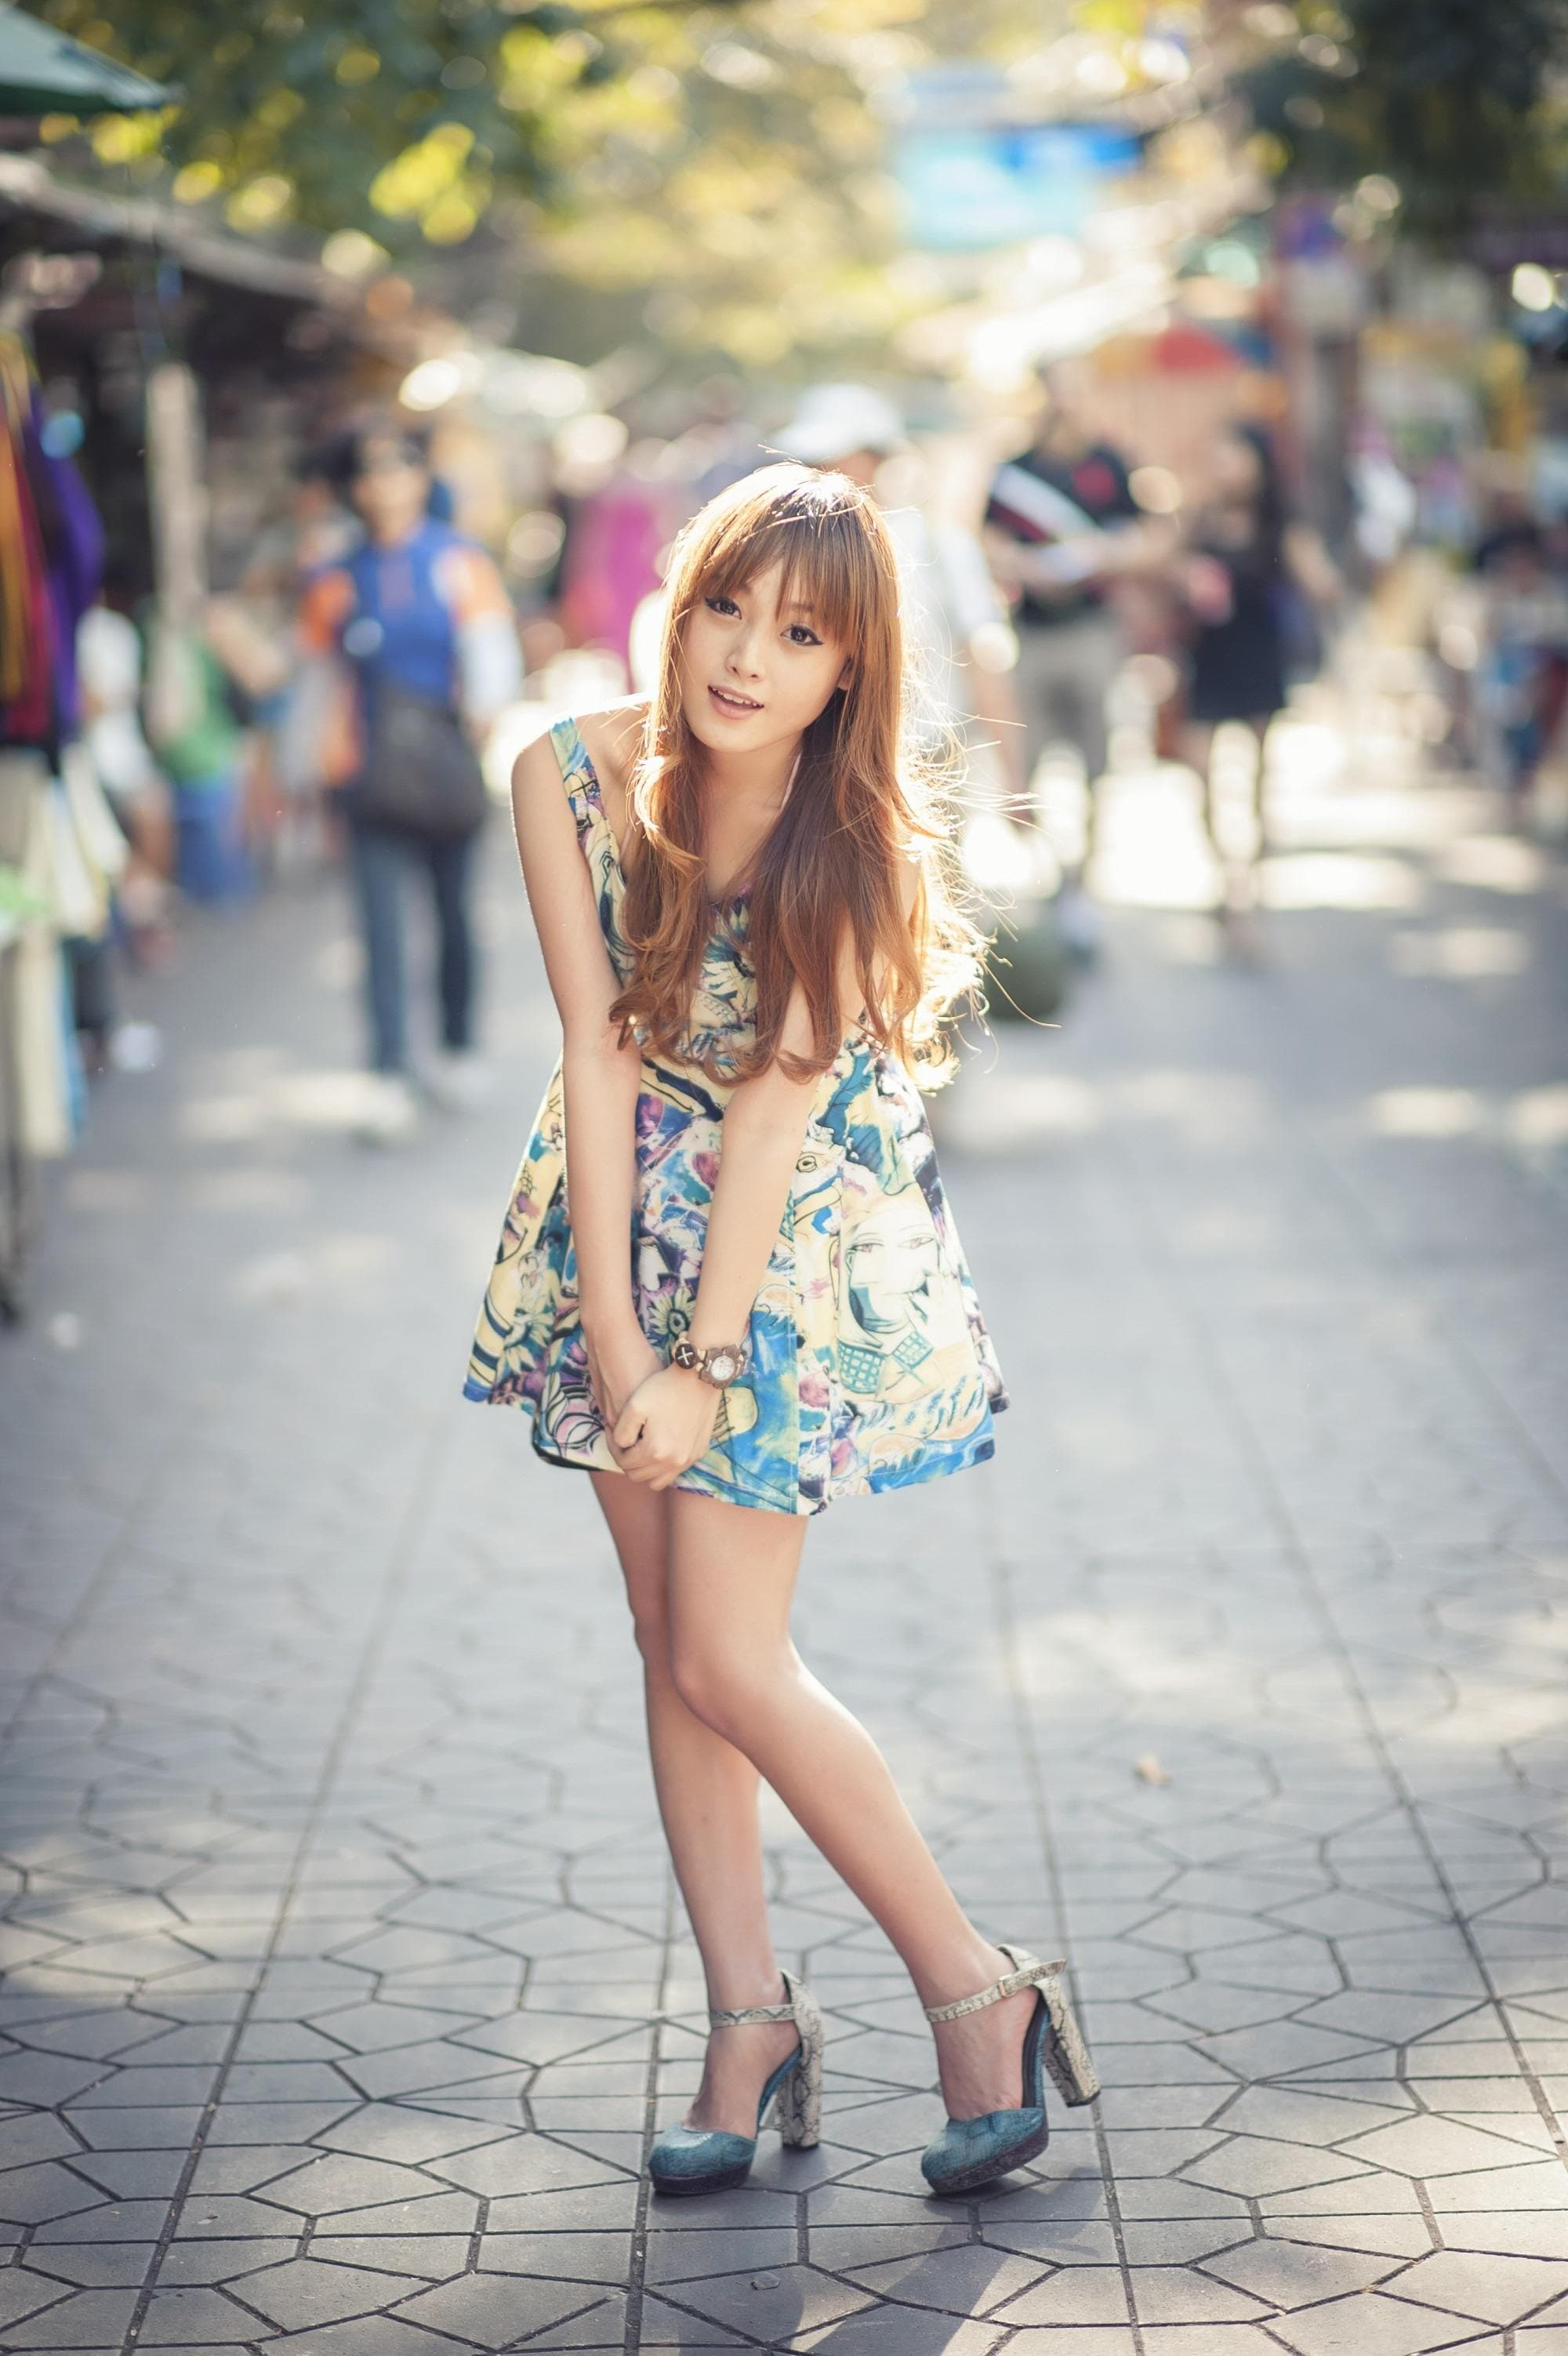 Asian woman with straight bangs and long hair